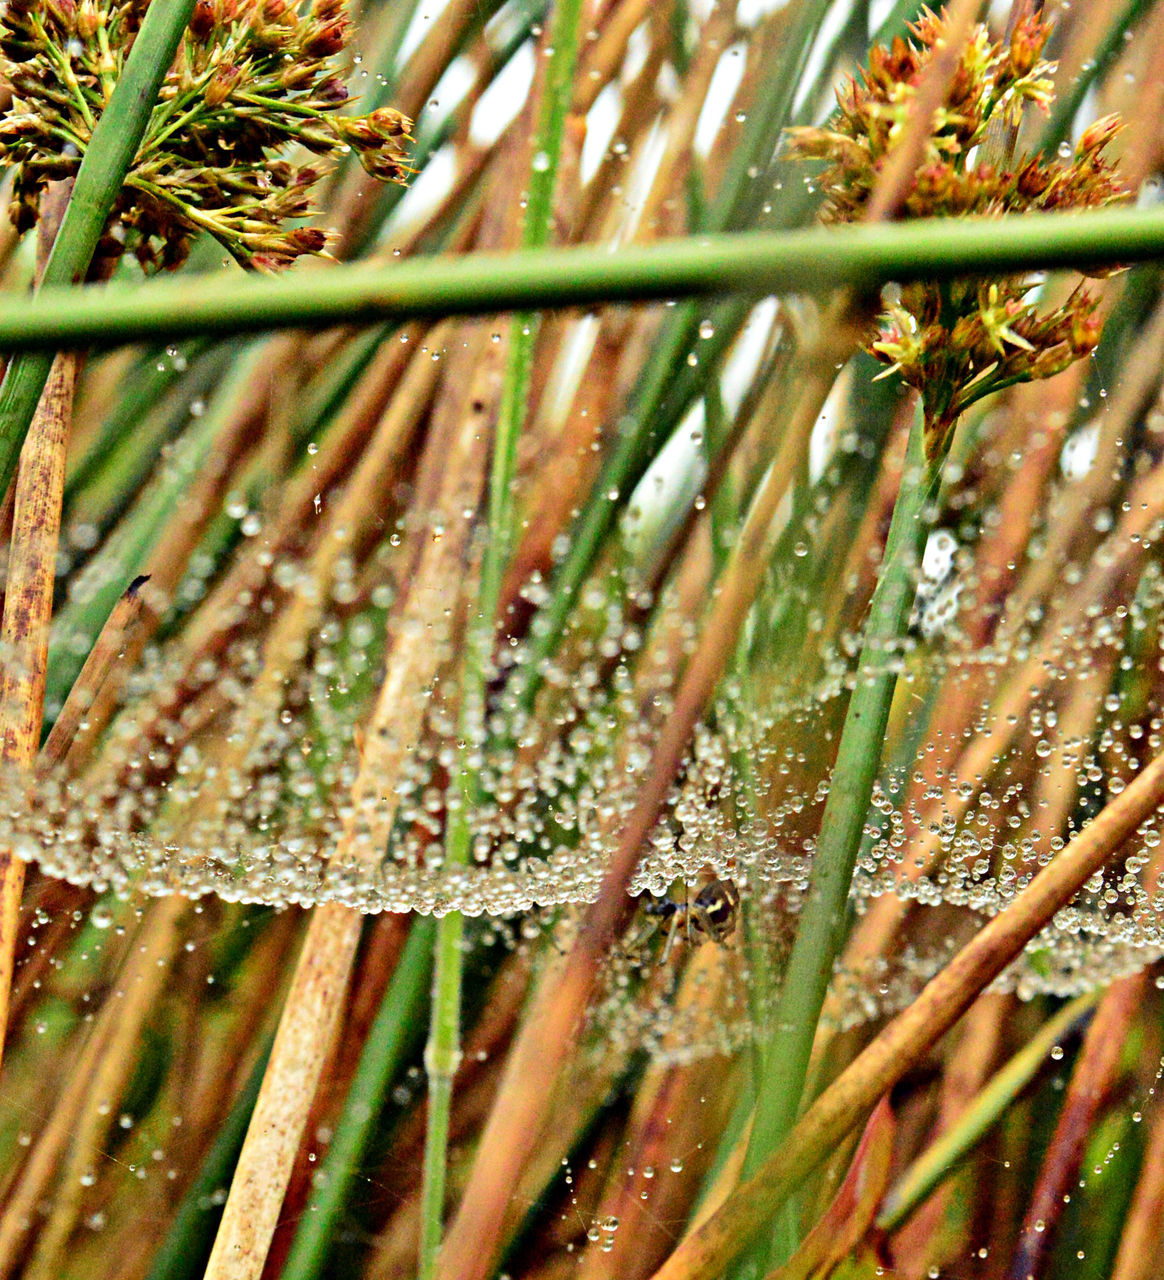 plant, growth, nature, day, no people, beauty in nature, selective focus, close-up, wet, water, green color, tree, outdoors, land, tranquility, drop, field, grass, freshness, blade of grass, bamboo - plant, dew, raindrop